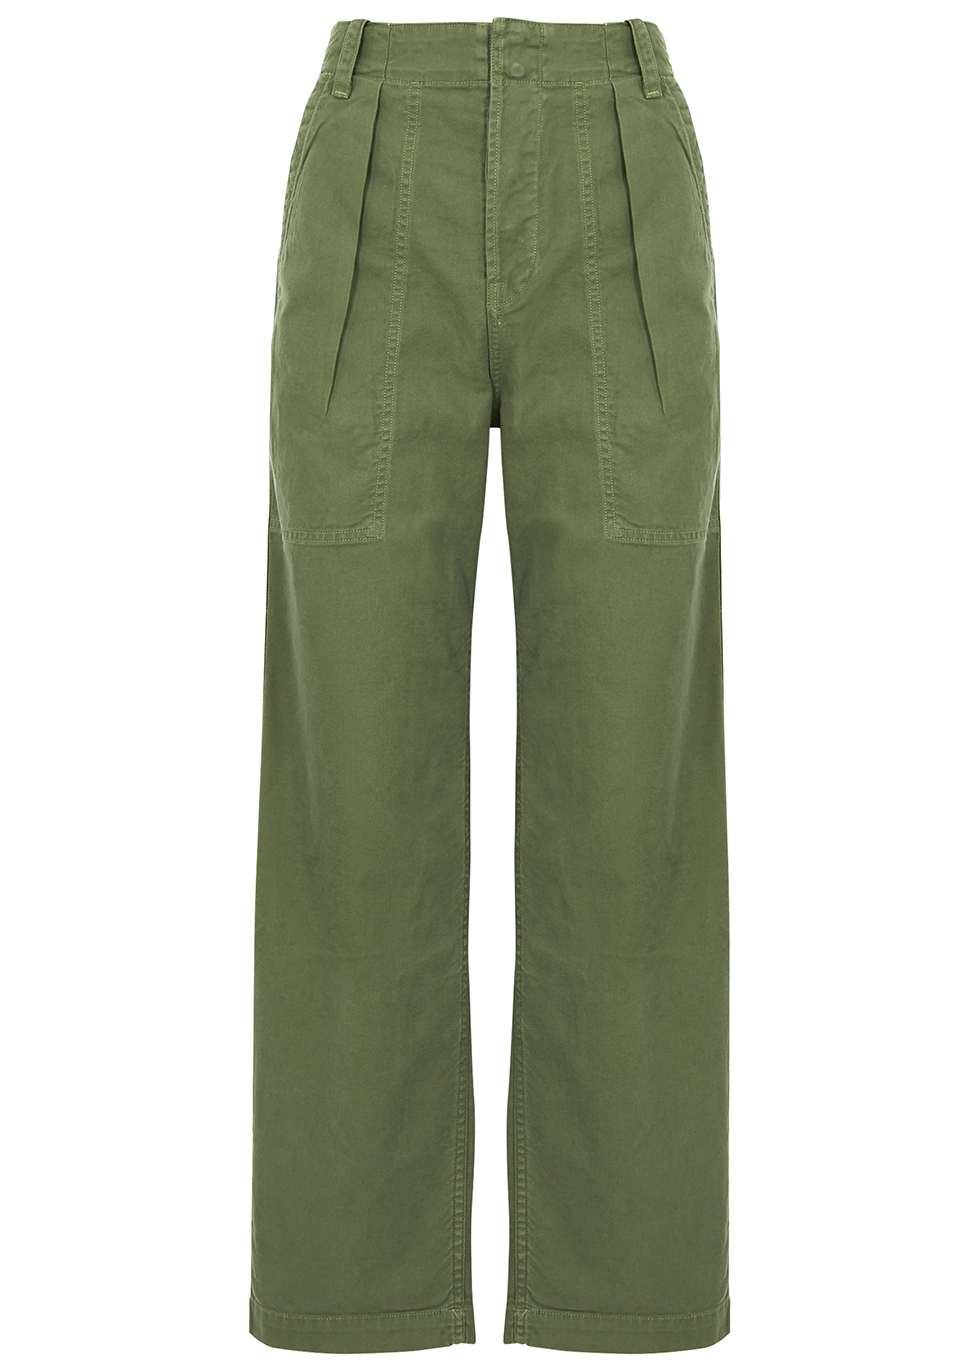 Cassidy army green twill trousers - Citizens of Humanity